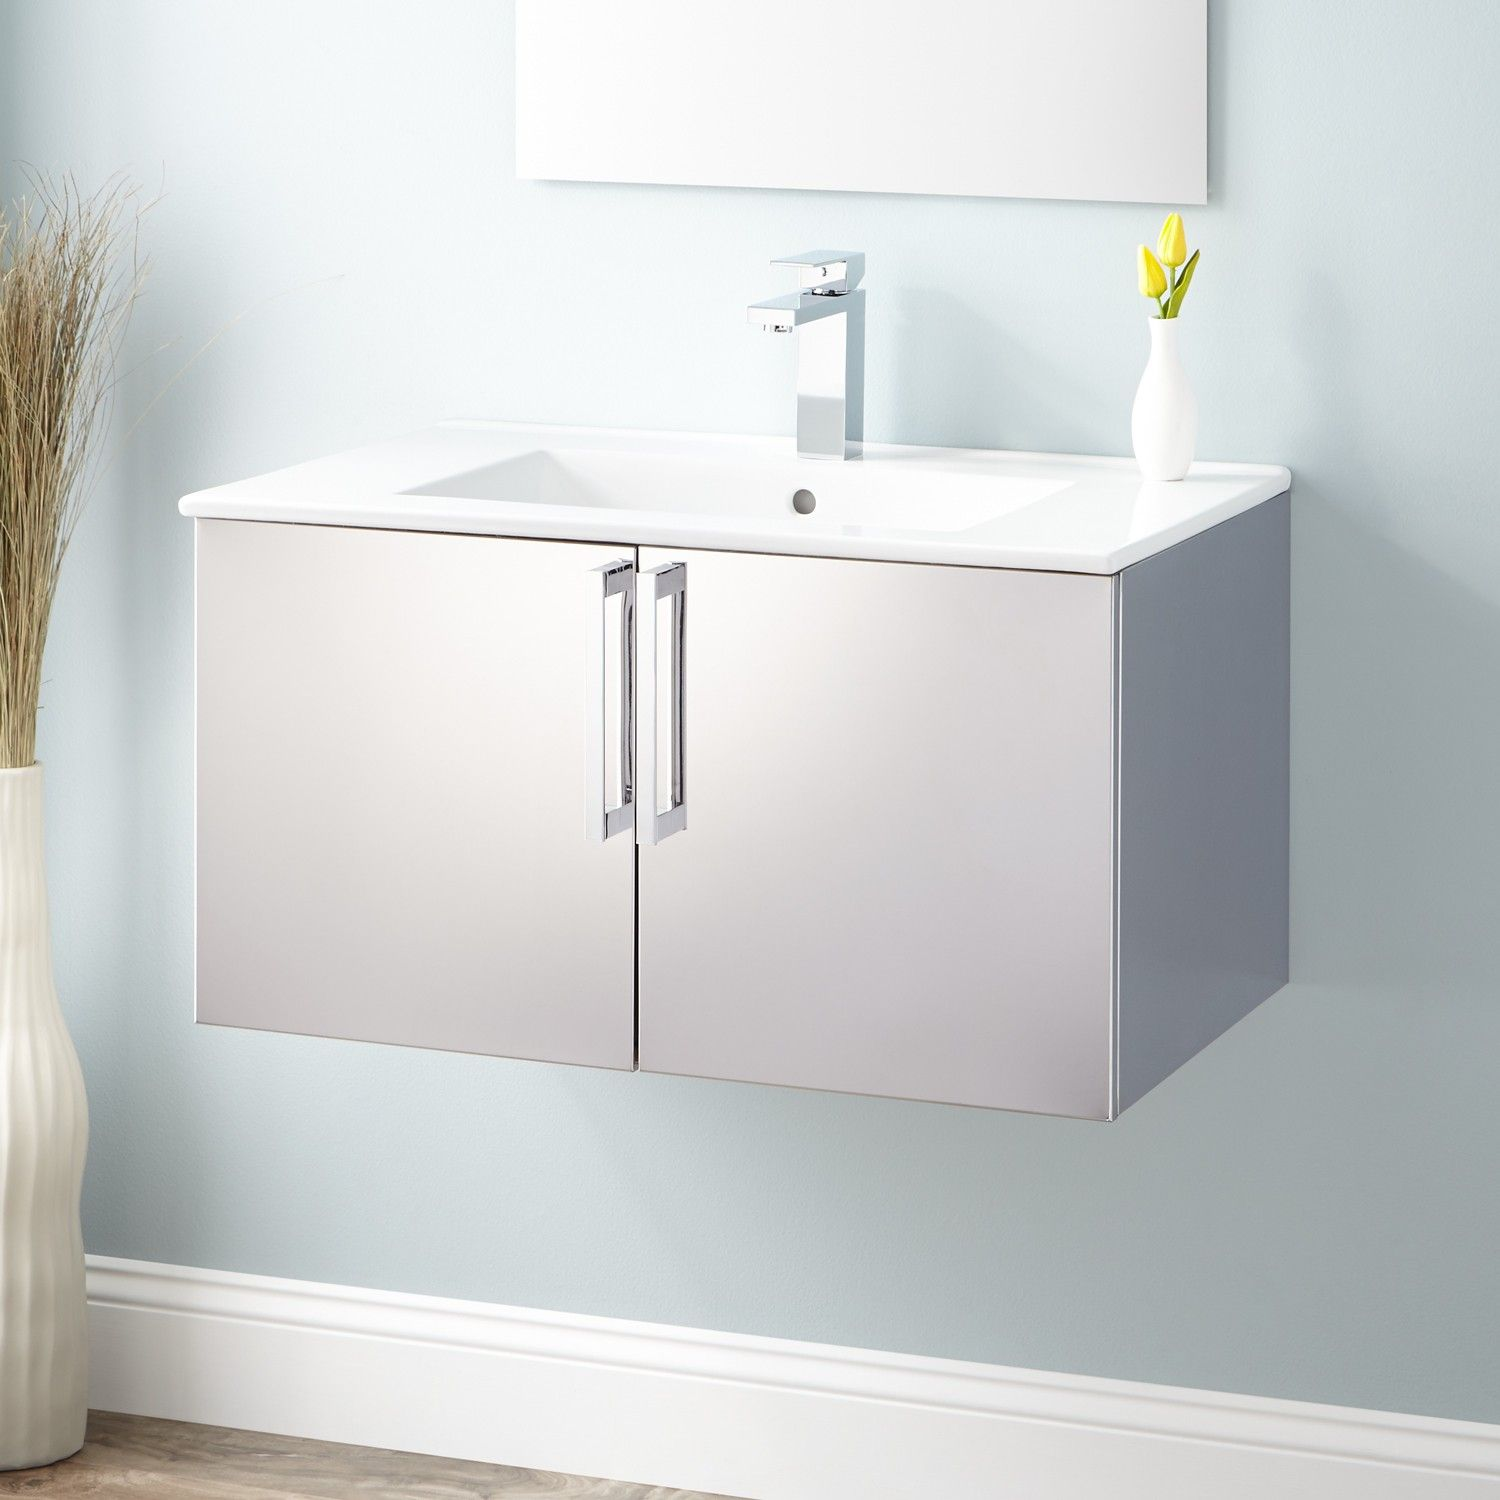 "30"" Crosstown Stainless Steel Wallhung Vanity  Polished  Wall Fascinating 30 Bathroom Vanity With Drawers Review"